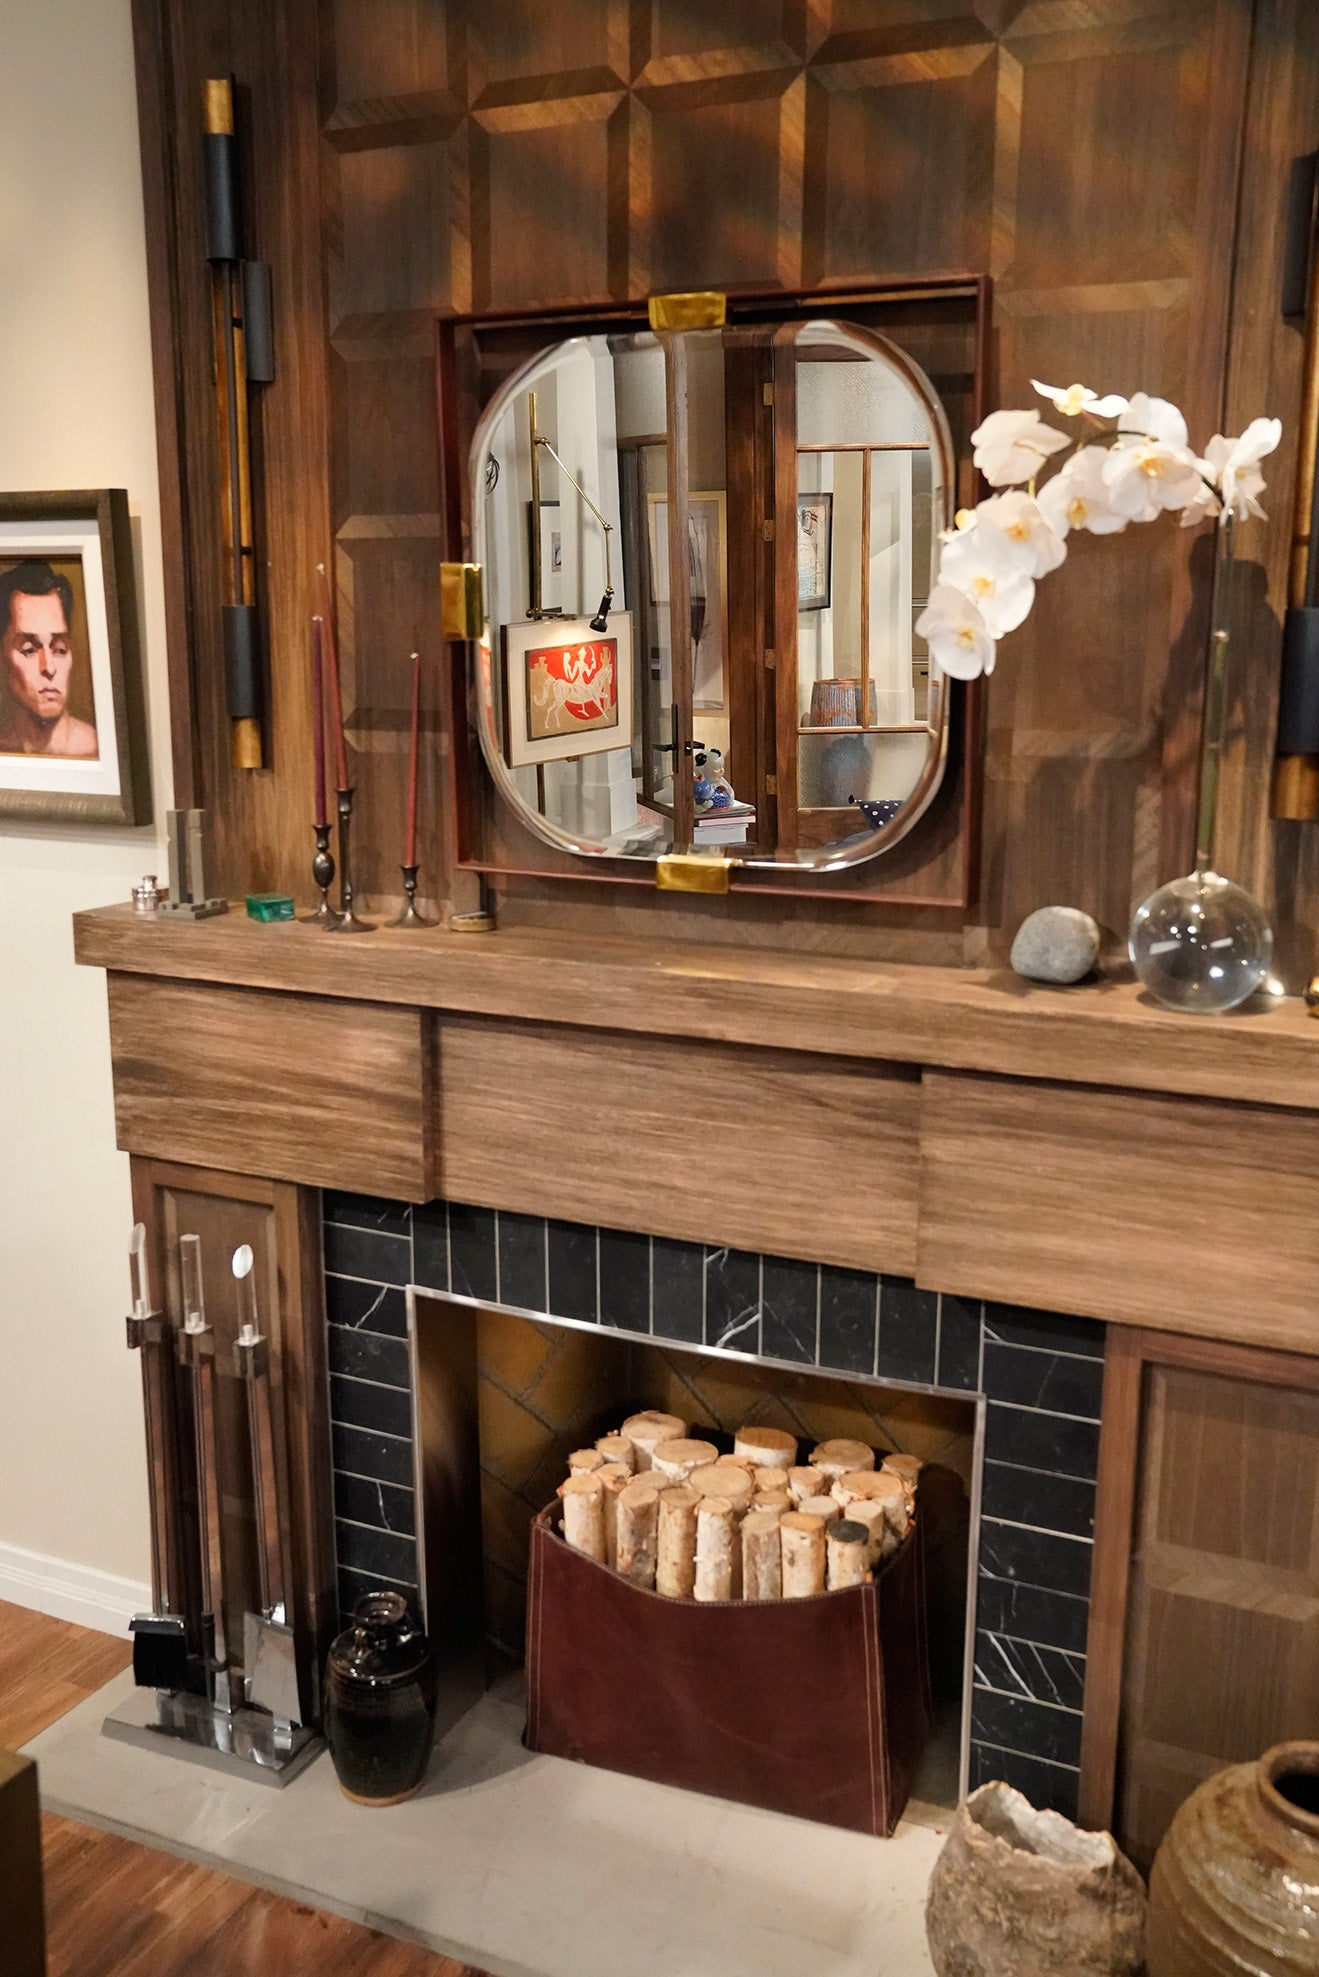 NBC Will & Grace Set Design -  Will & Grace's Apartment new season 2017 Fireplace